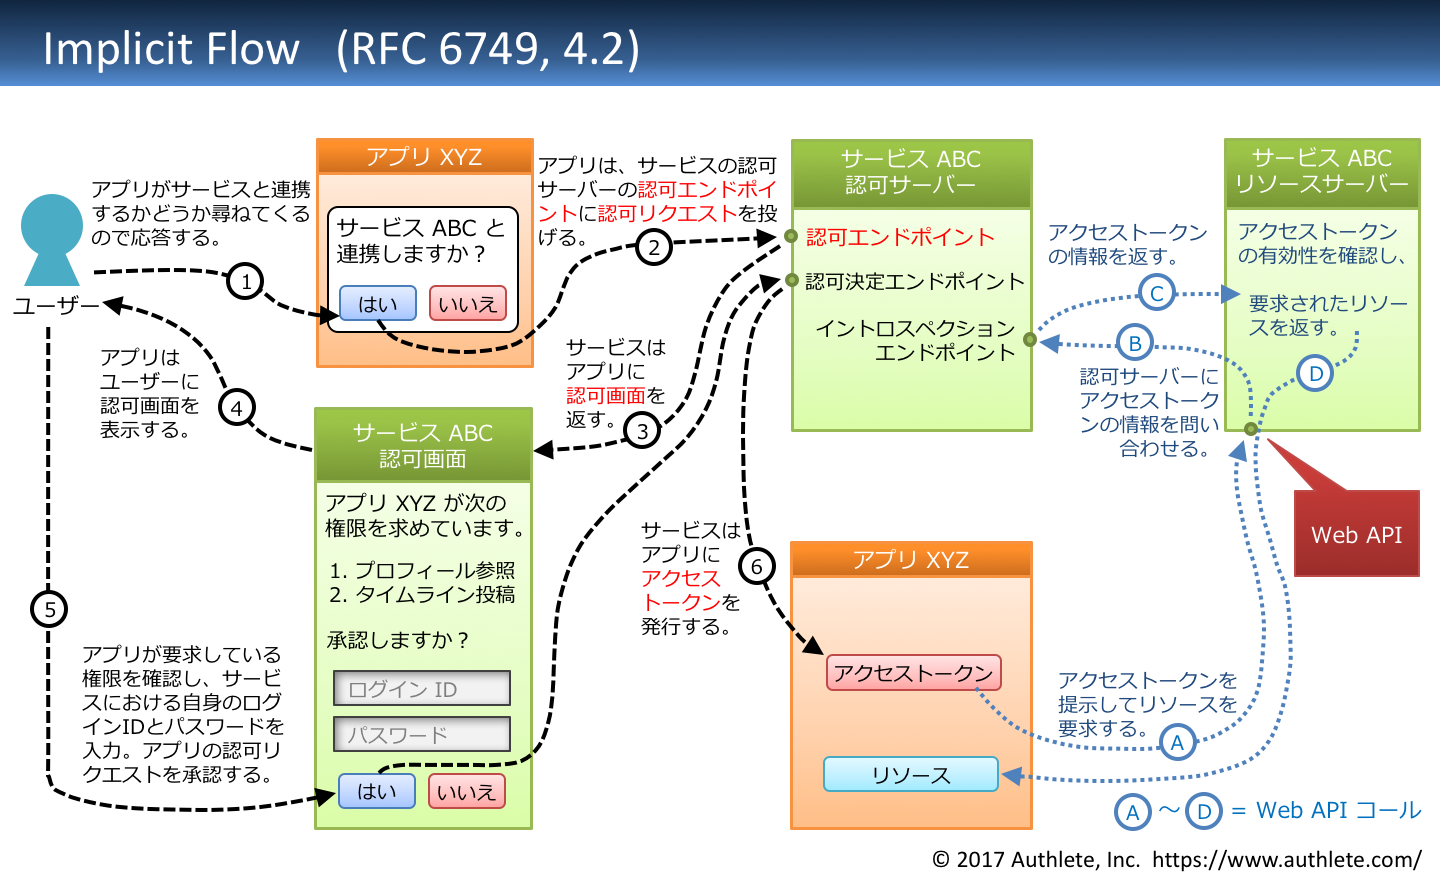 RFC6749-4_2-implicit_flow-Japanese.png